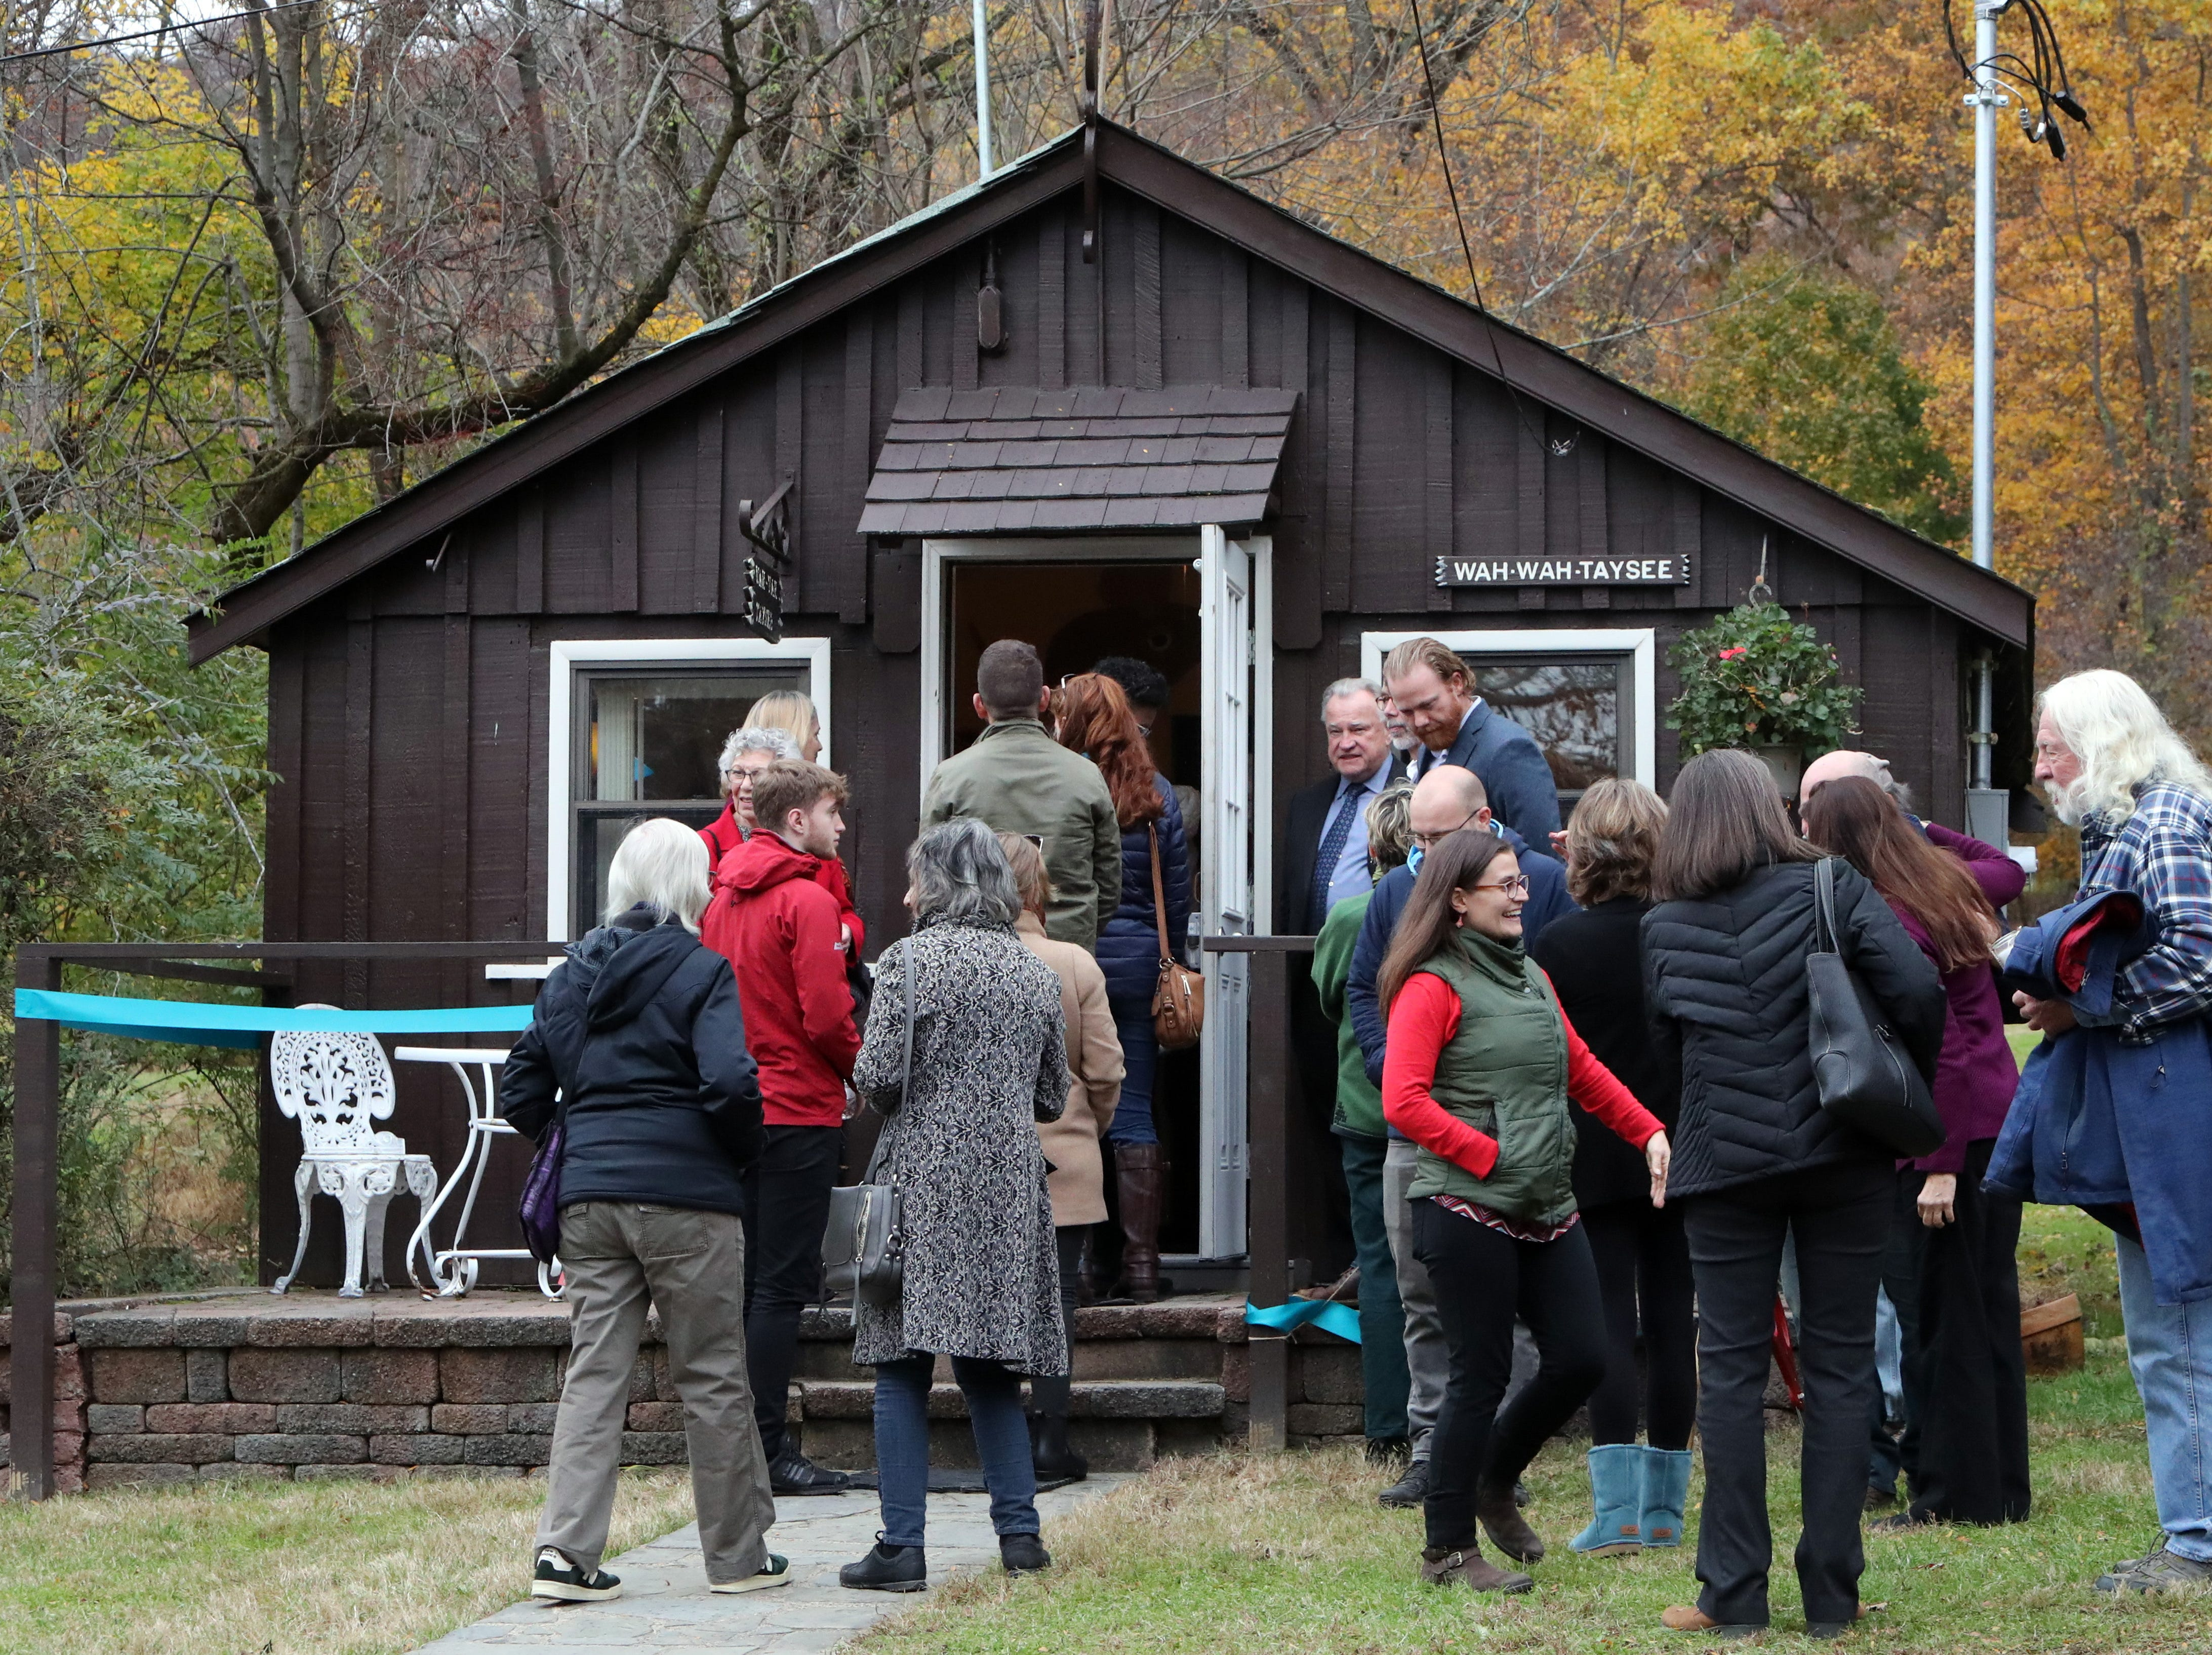 An opening ceremony was held for Strawtown Studio's new studios at the Marydell Faith and Life Center in Nyack Nov. 9, 2018. Strawtown Studio runs arts and ecology programs for children and young adults.